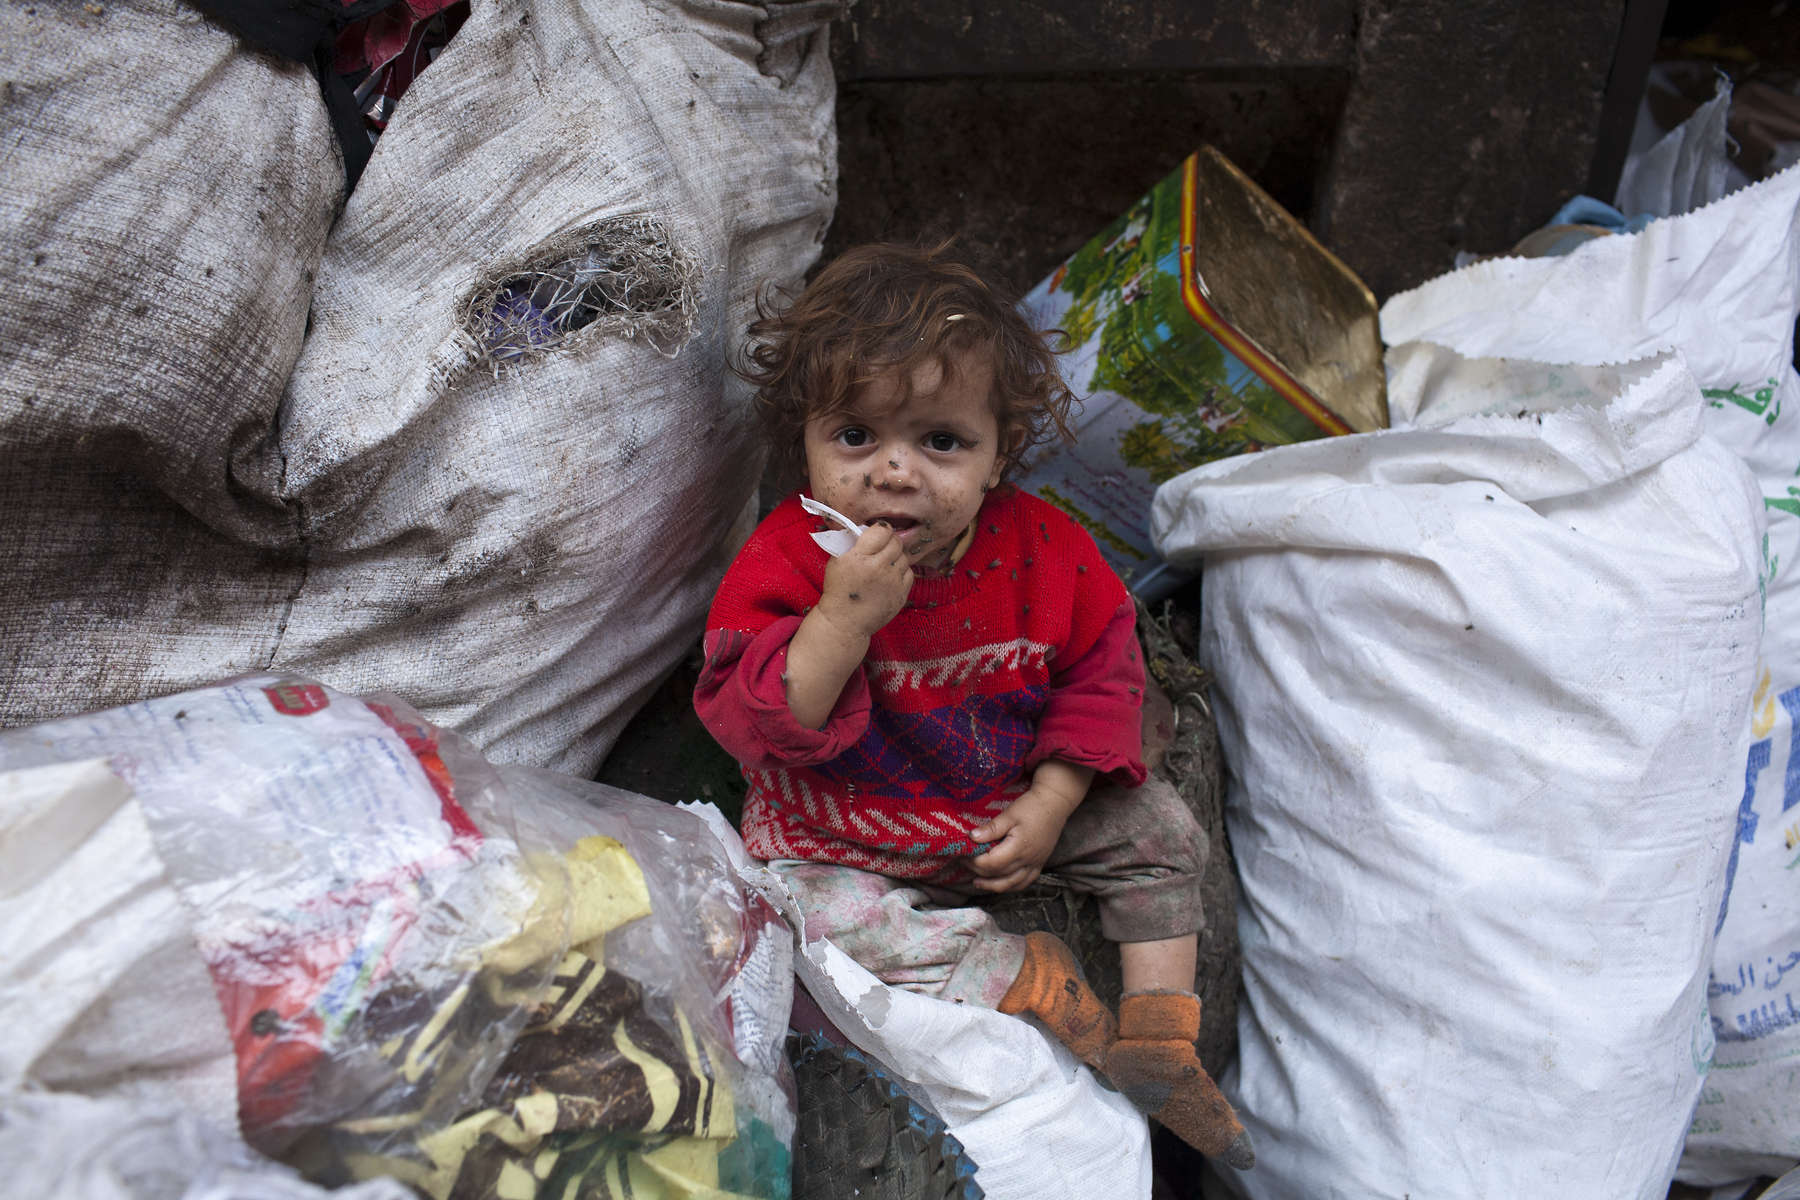 """A filthy young child sits on a pile of rubbish stacked on a street in Moqqatam.Moqqatam is a suburb on the edge of Cairo and home to a people known as the Zabaleen, said to be the world's greatest waste recyclers. The Zabaleen, which means plainly enough, """"the garbage collectors"""", pick up around 4,000 tons of Cairo's waste each day. American researchers have shown that the Zabaleen recycle 85% of this garbage into something useful: a higher rate than anywhere else on the planet. The men do two shifts leaving about 4am and again around 9am. The rubbish is taken back to Moqqatam for the women to sit in and sort through. The organic waste is fed to livestock (the Zabaleen are originally swine herders), the rest sorted for recycling. The future of the Zabaleen is uncertain: if the Cairo authorities get their way, this community of around 25,000 Coptic Christians living in a Muslim country will be gone, and with it, their unique lifestyle."""